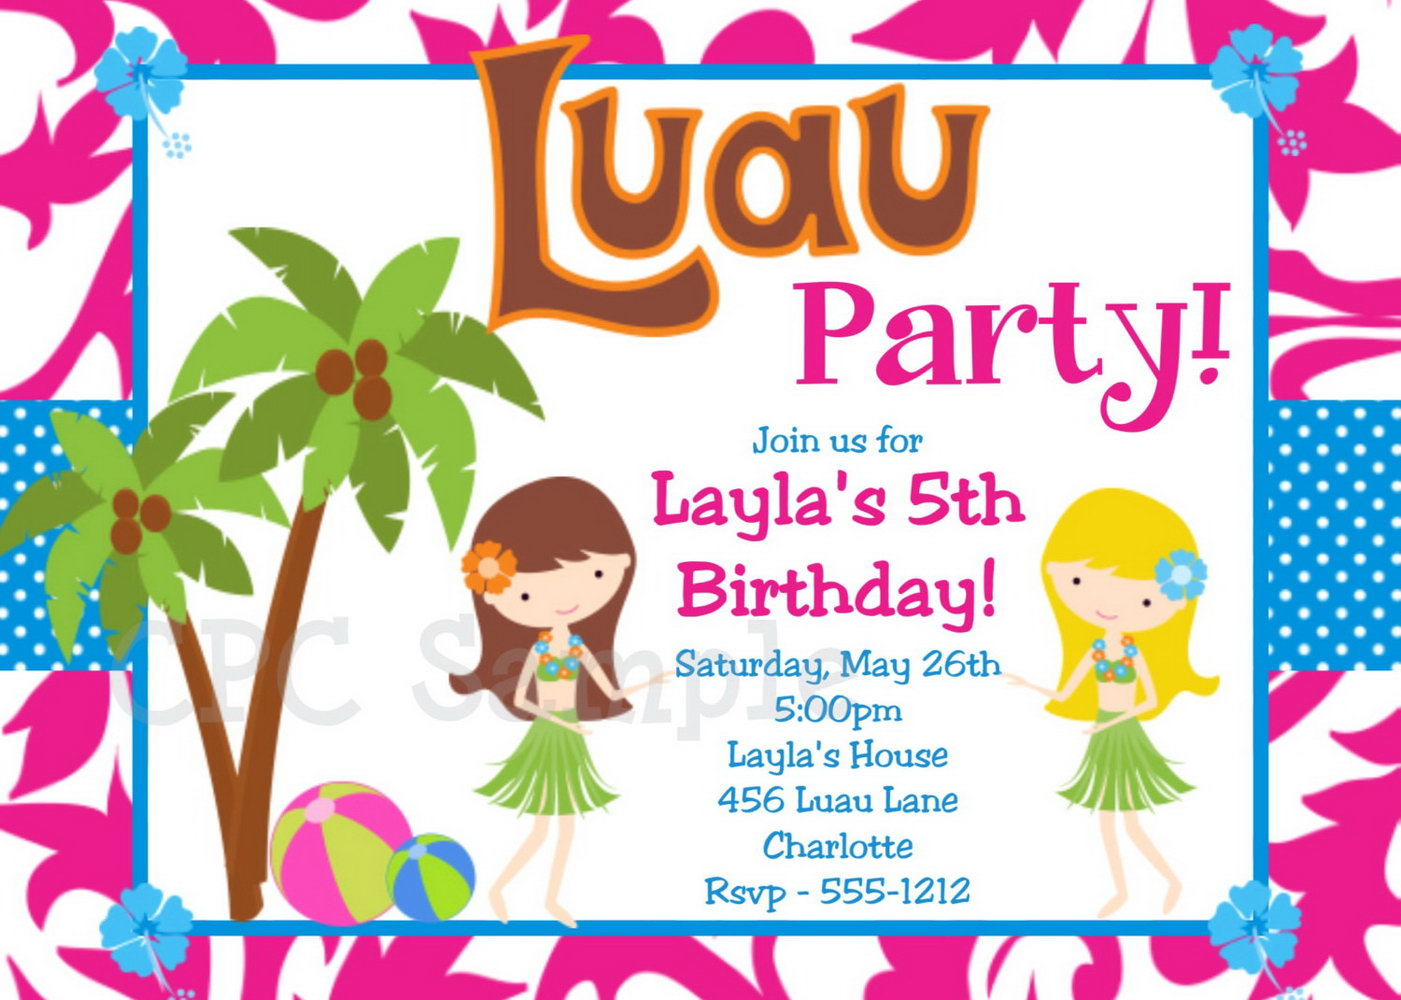 Luau Party Invitation Template Free